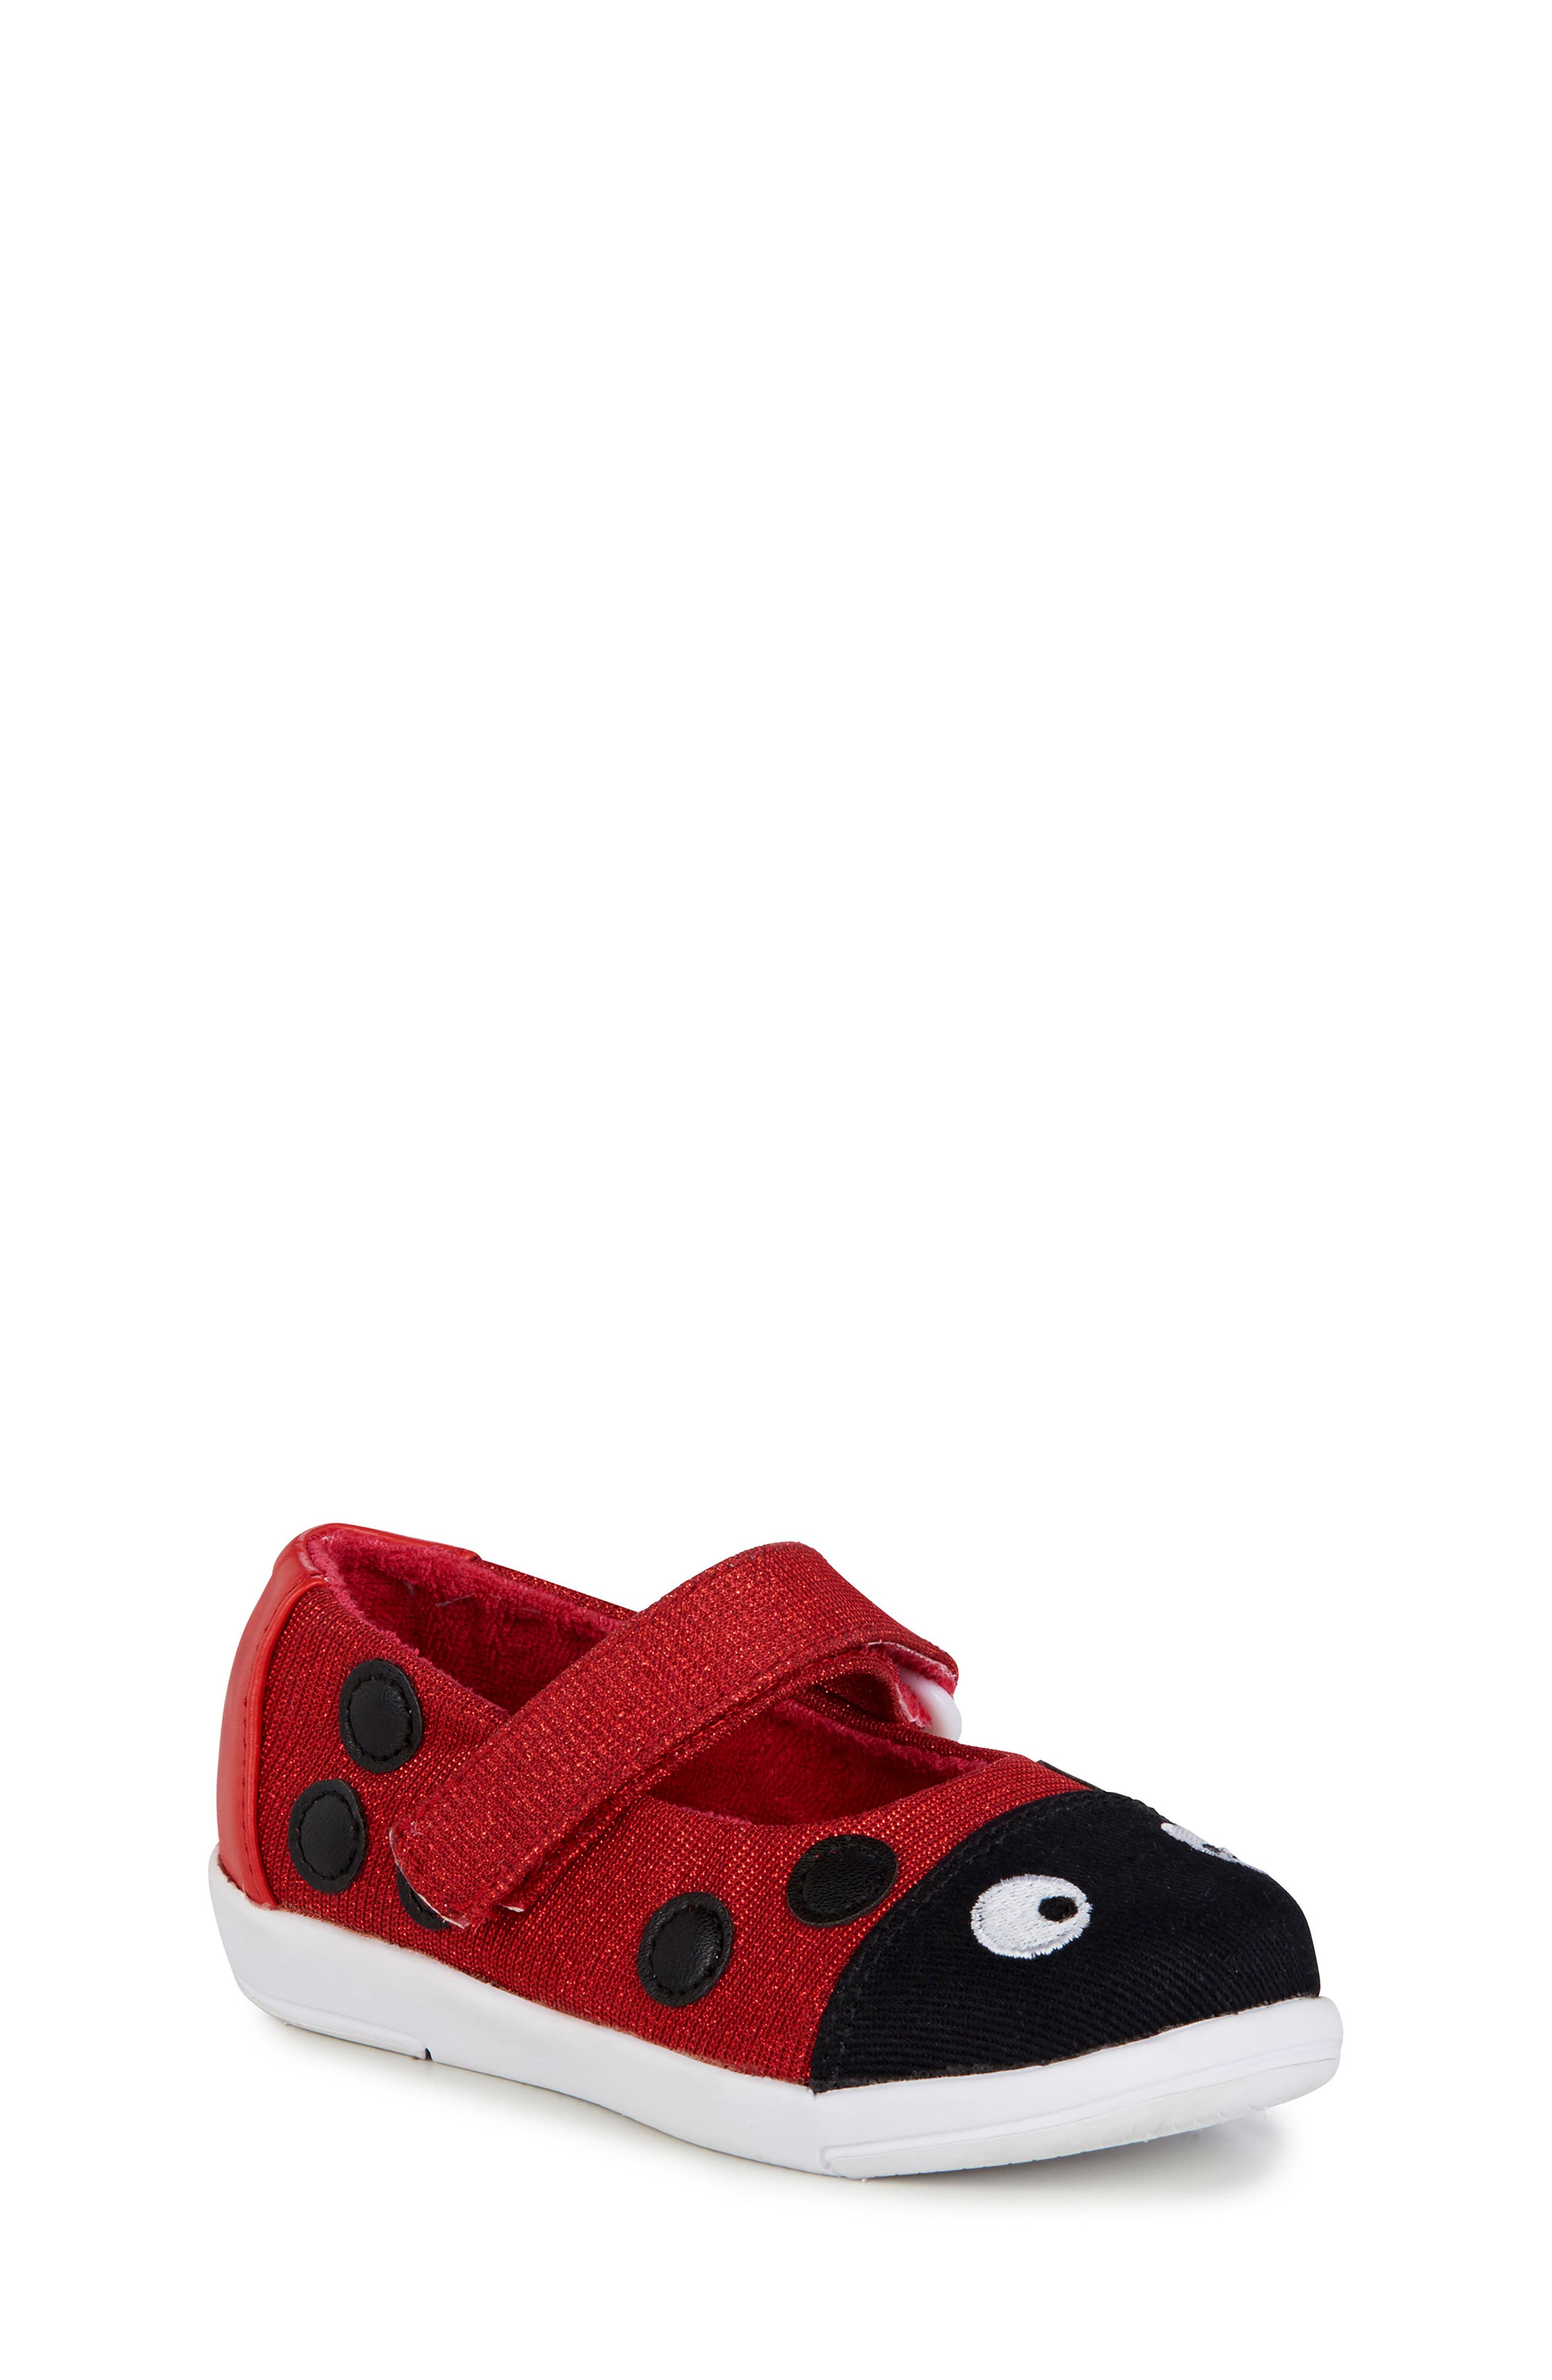 Ladybug Mary Jane,                         Main,                         color, Red